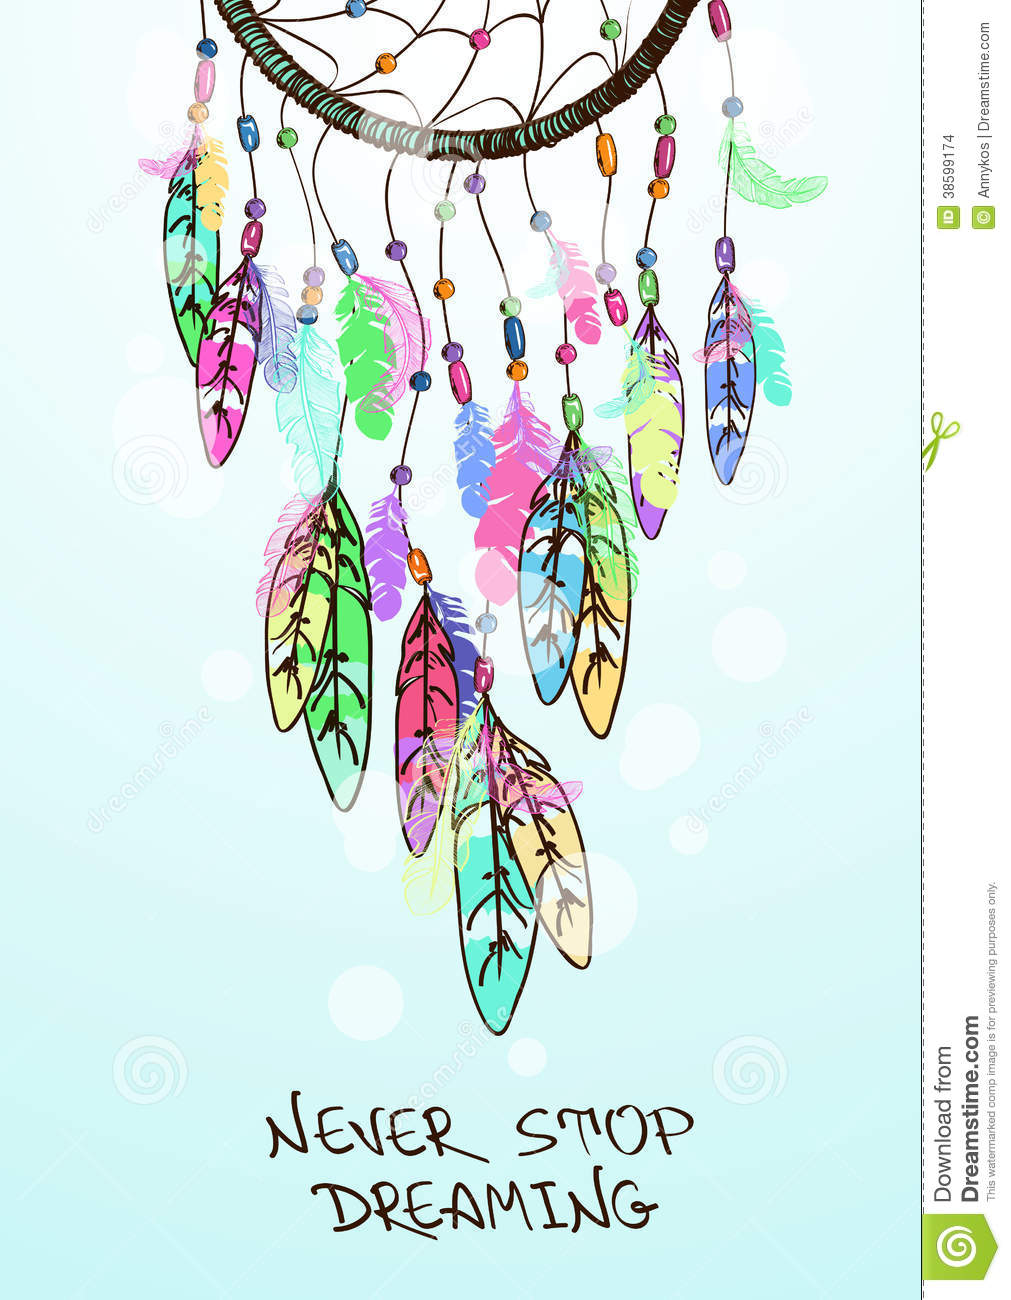 Tumblr iphone wallpaper dreamcatcher - Colorful Ethnic Illustration With American Indians Dreamcatcher